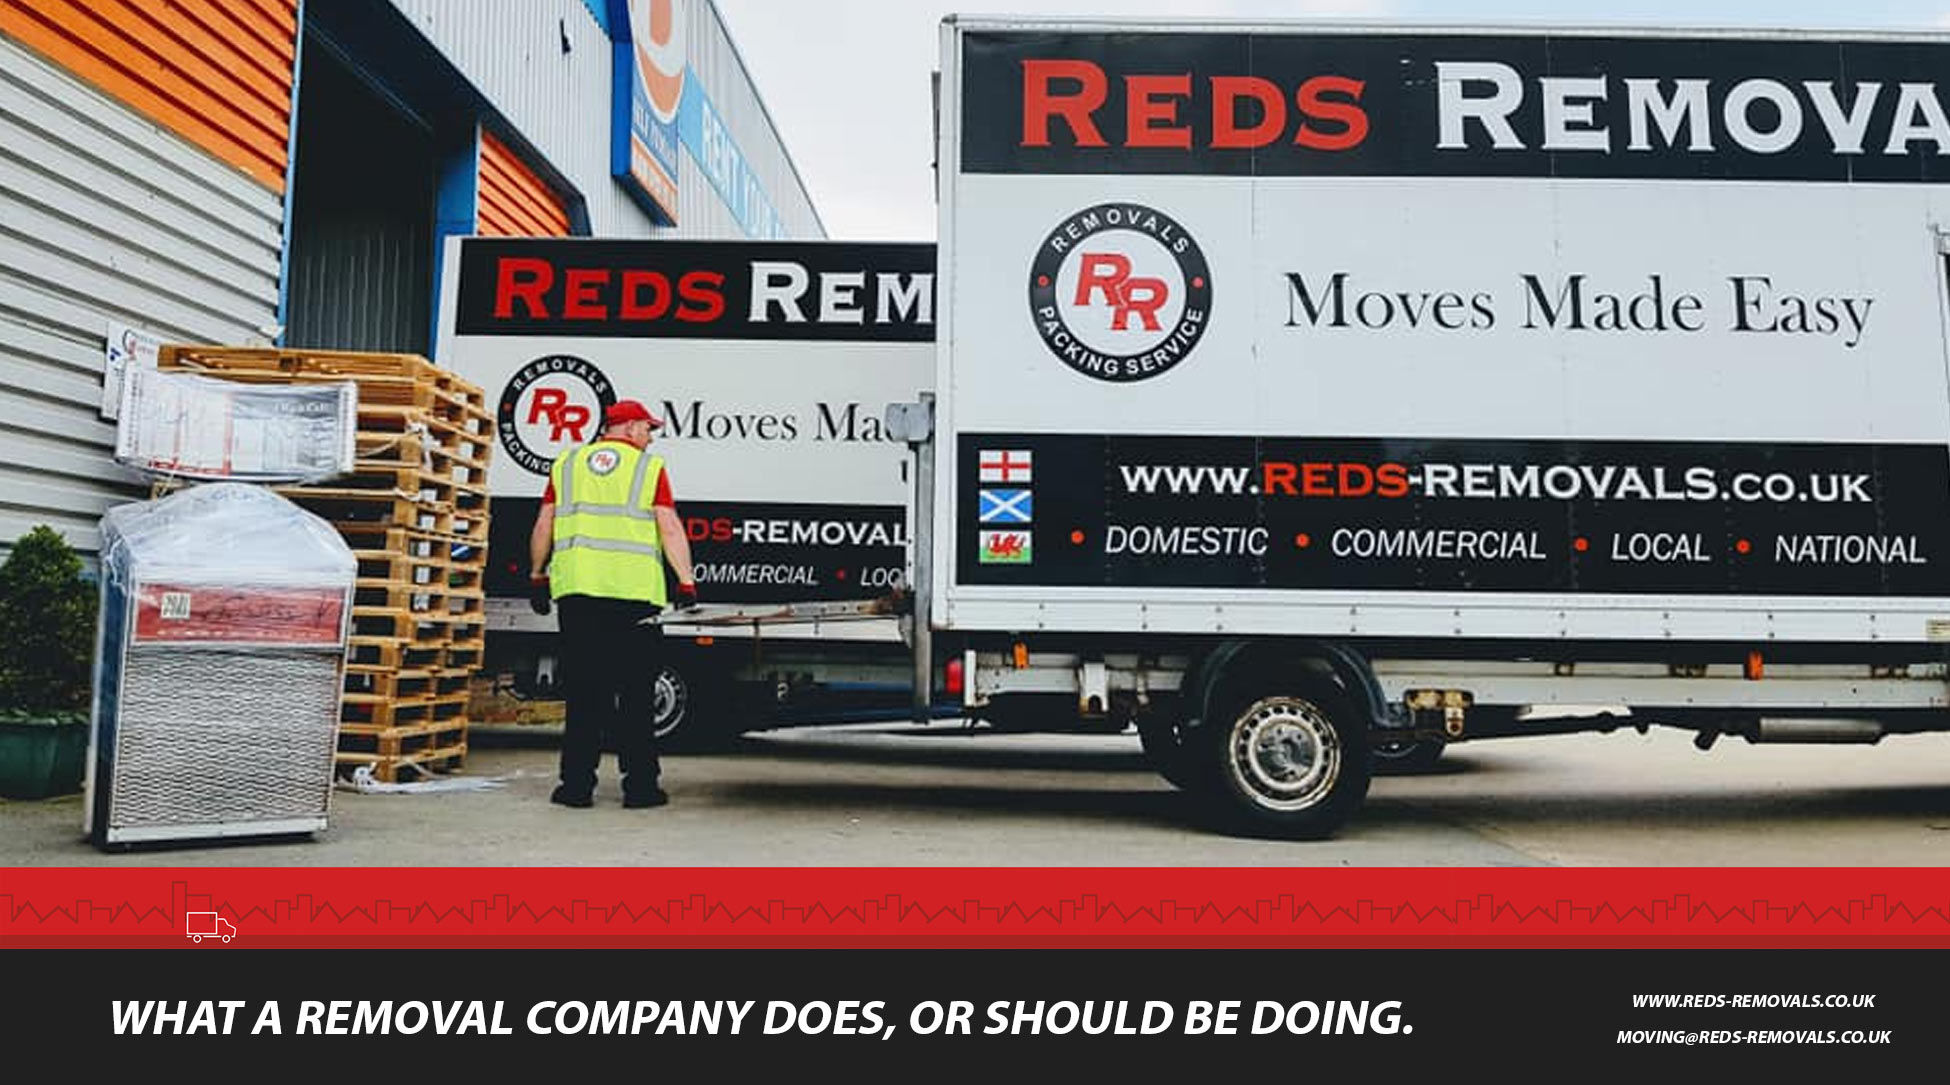 Choosing your removal company and what your removal company does to make your house move easy.